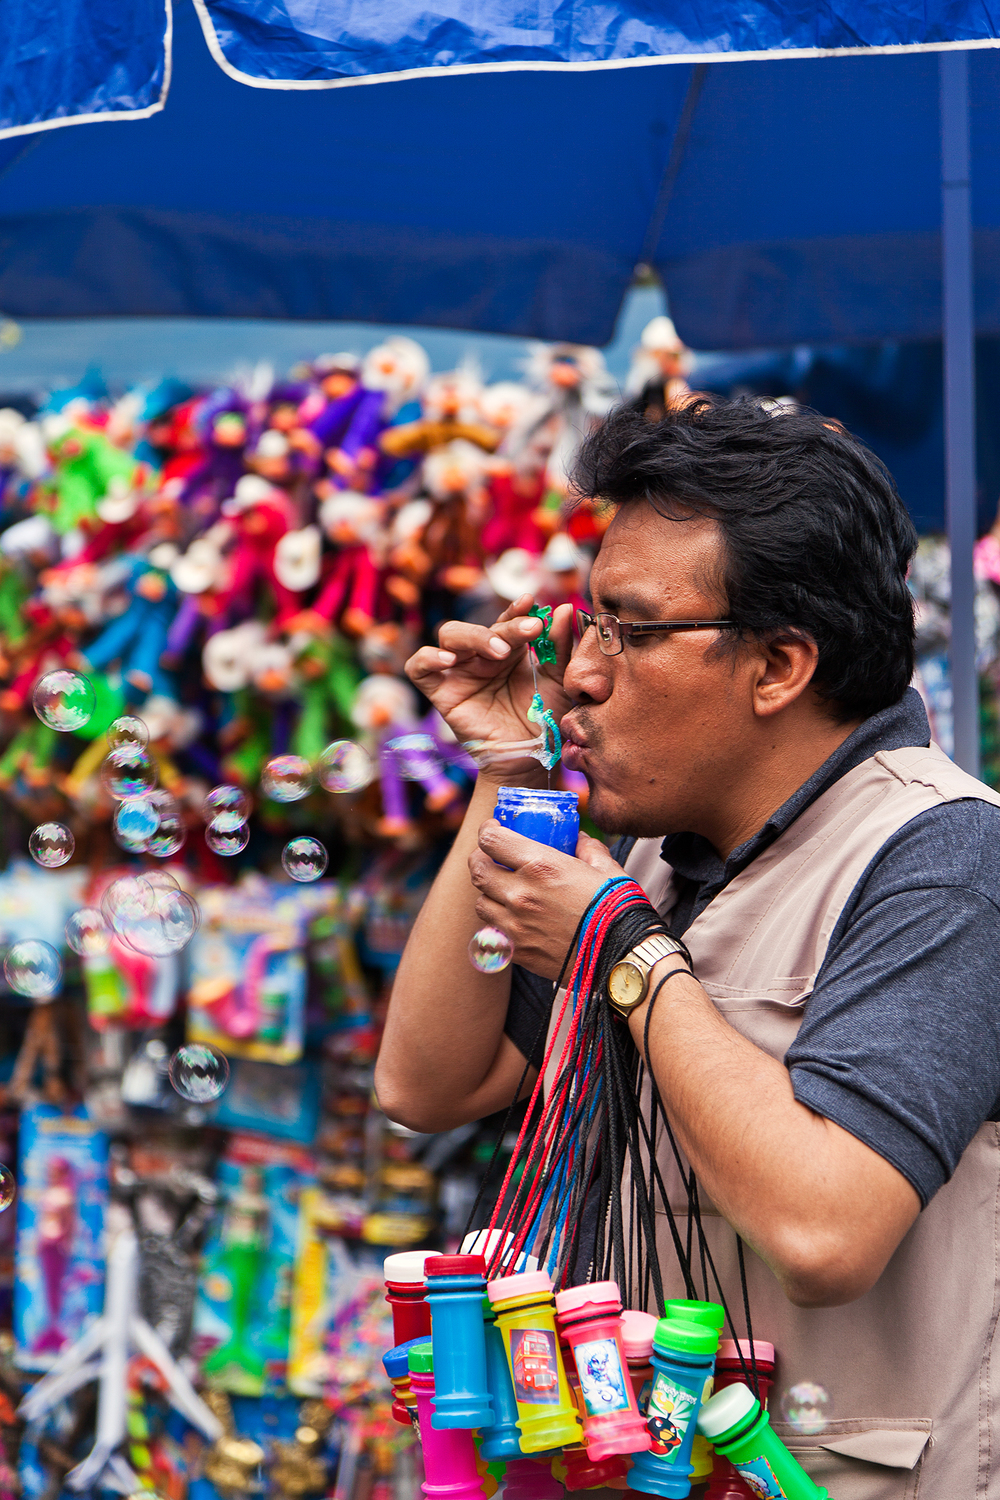 man blowing bubbles chapultepec park mexico city.jpg